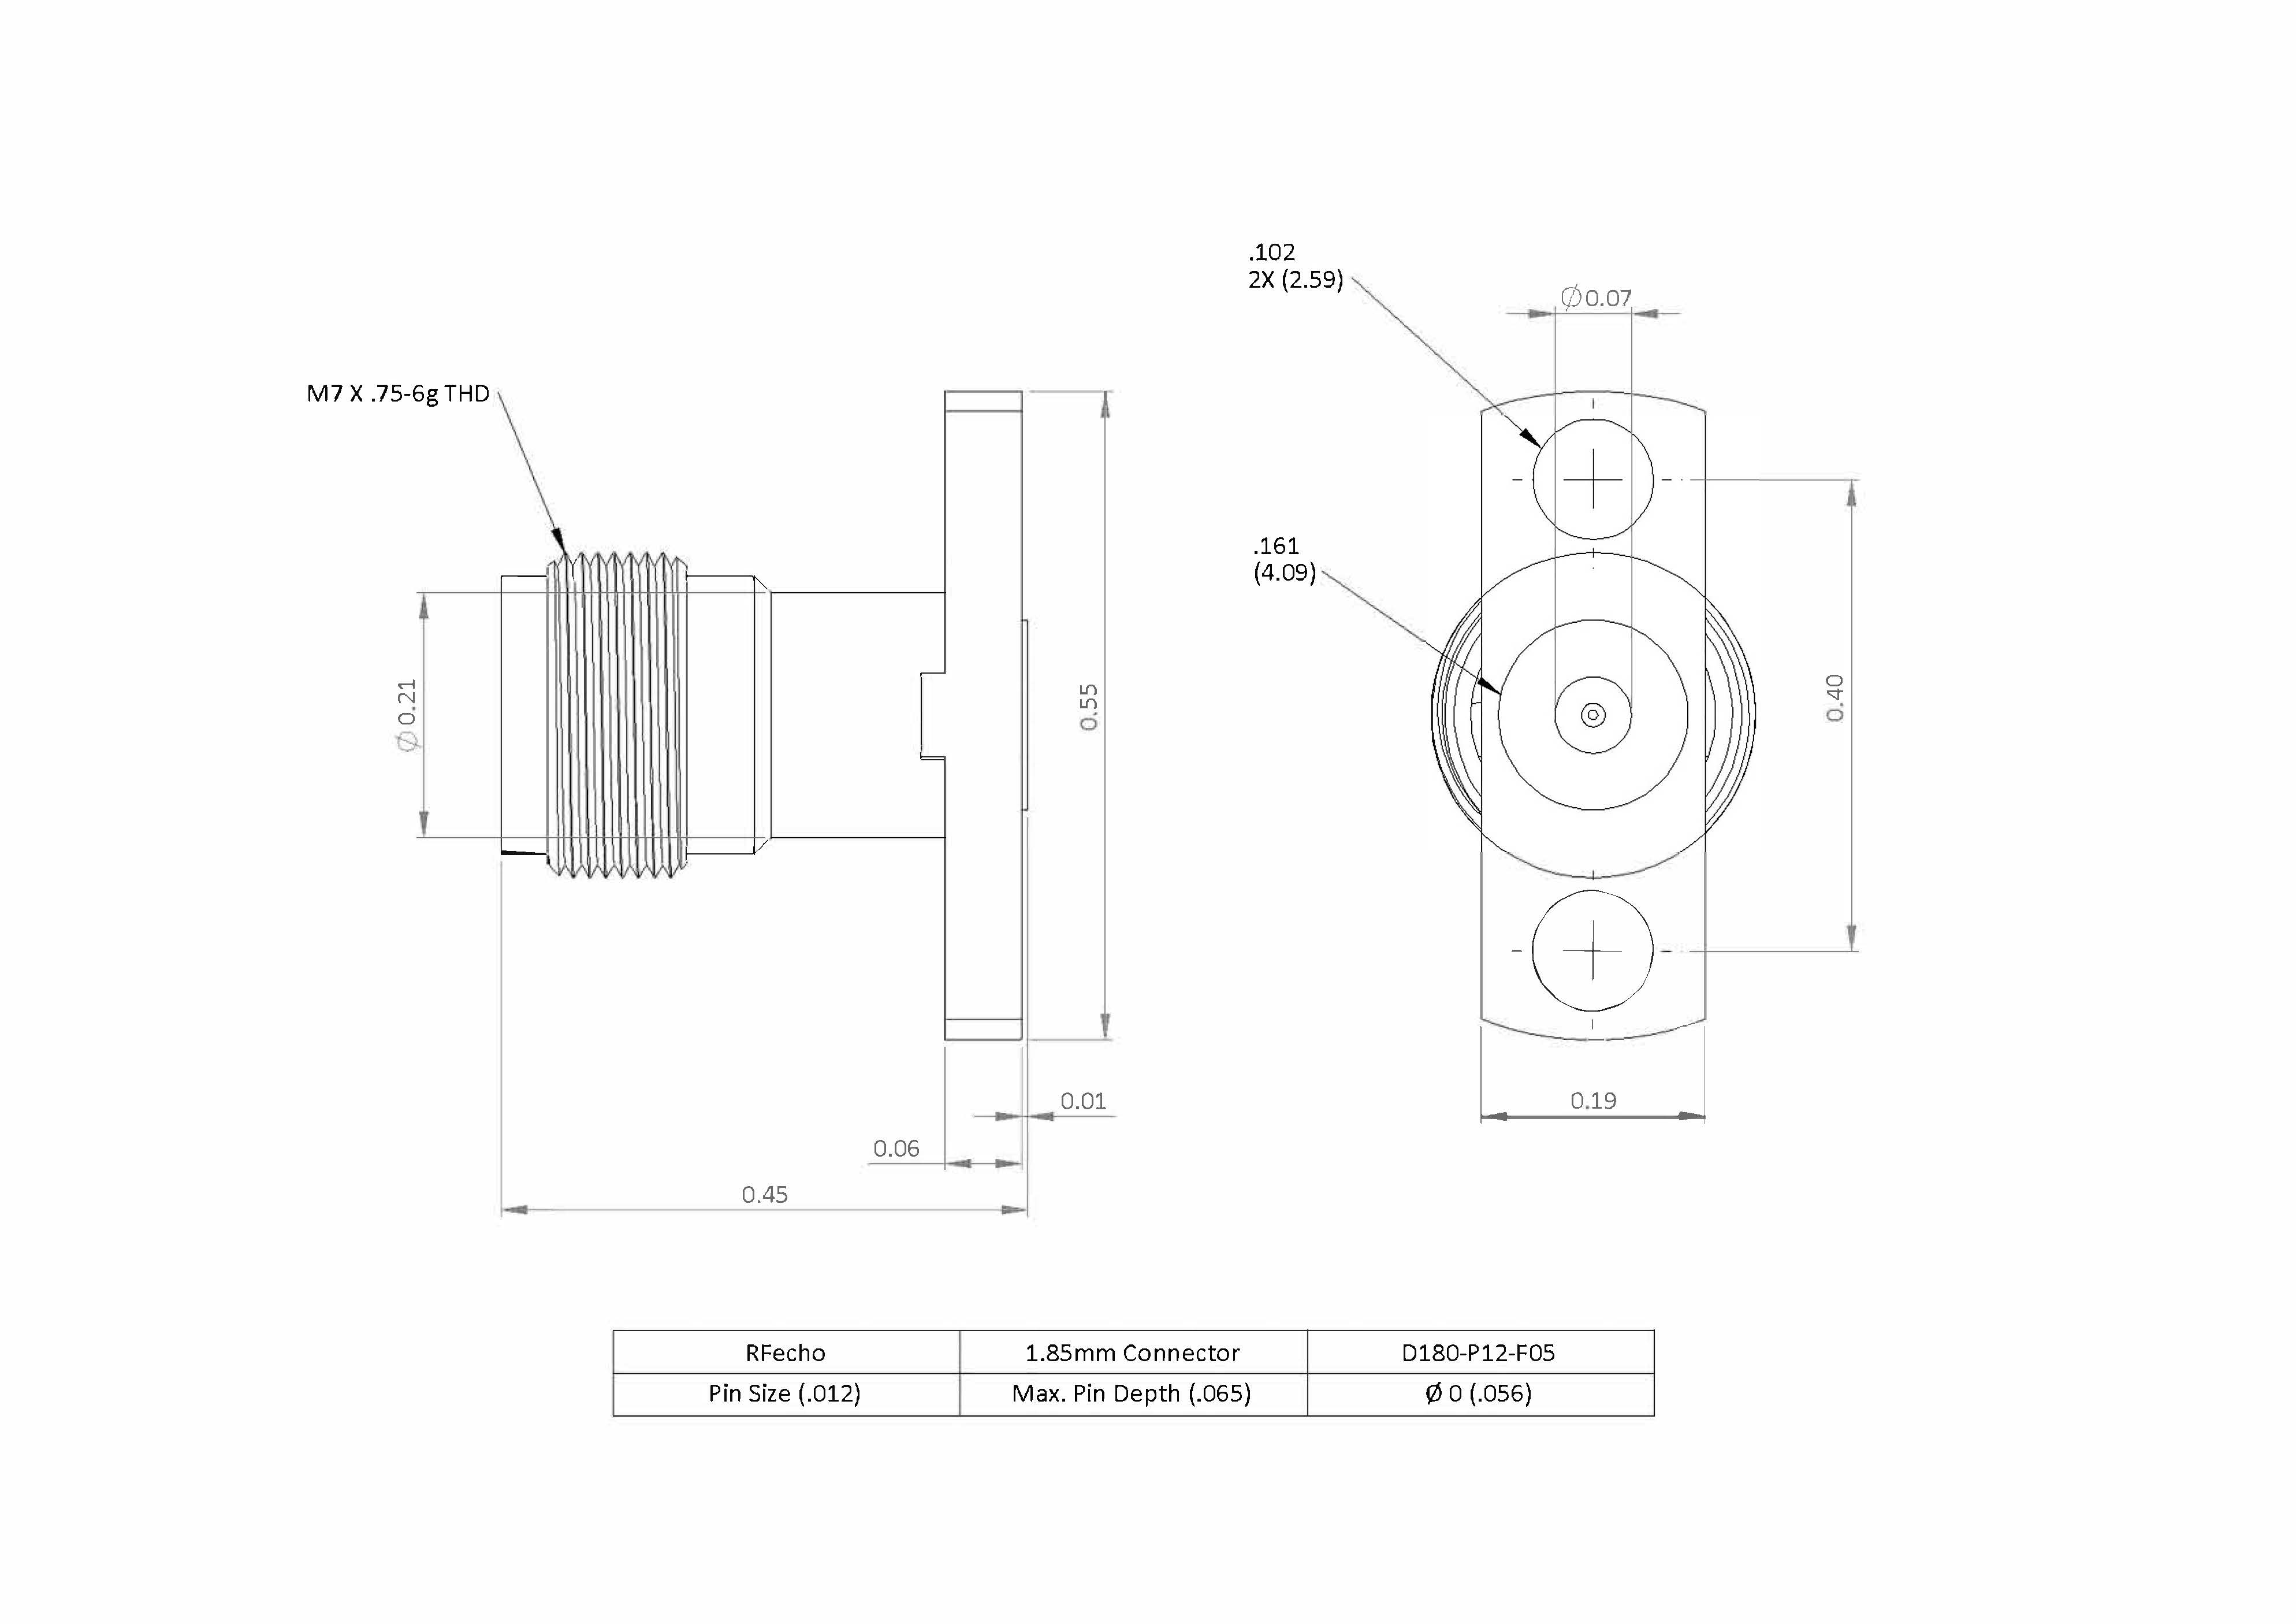 """1.85mm 67 GHz, 0.012"""" Accept Pin Diameter, 2 Hole 0.550″ Long Mounting Flange Female Connector"""